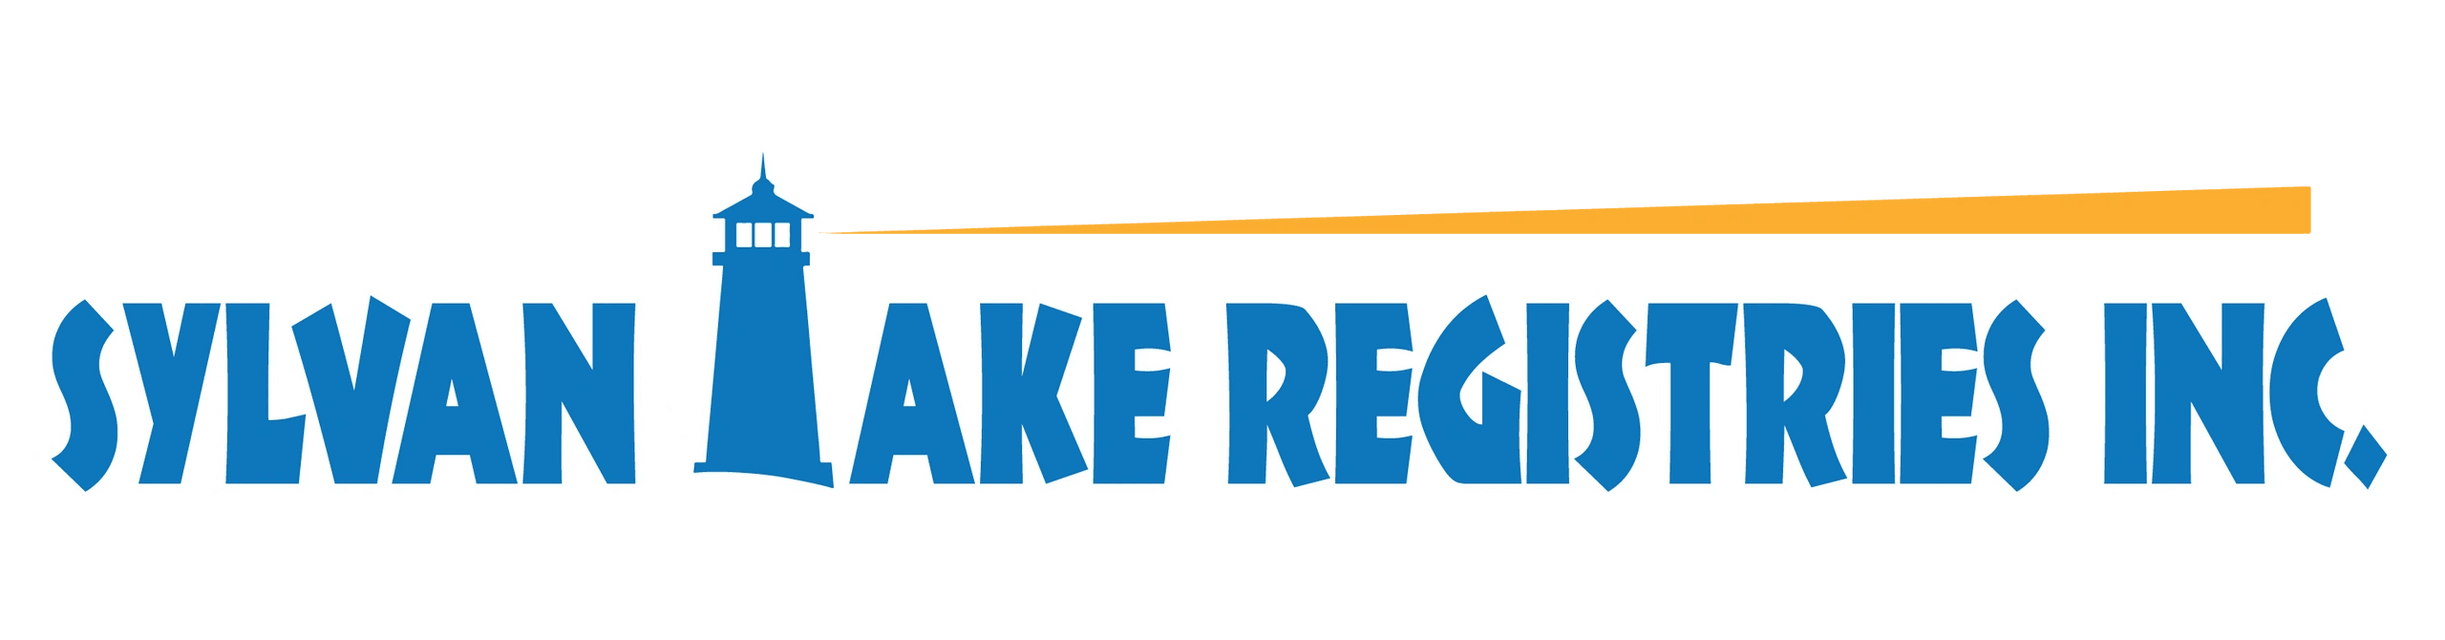 Sylvan Lake Registries Inc.